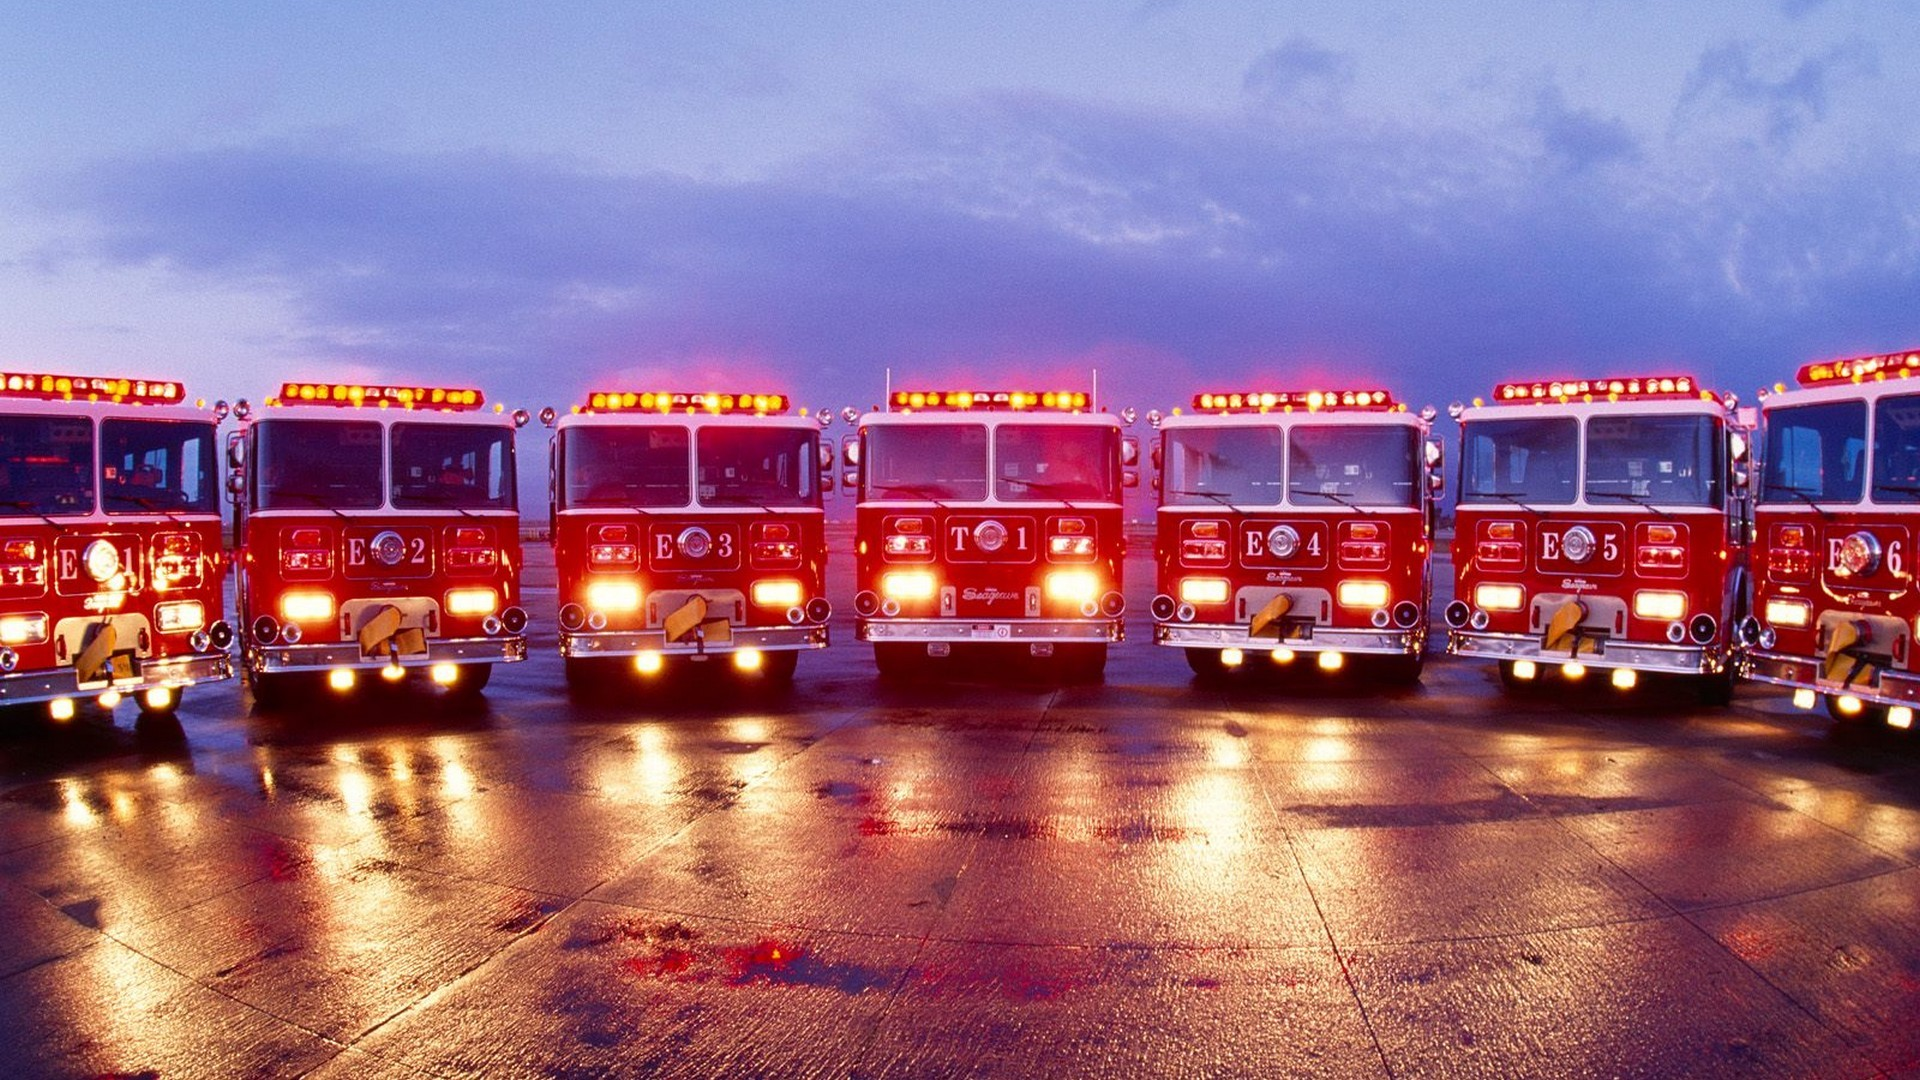 Fire Truck Backgrounds for Pinterest 1920x1080